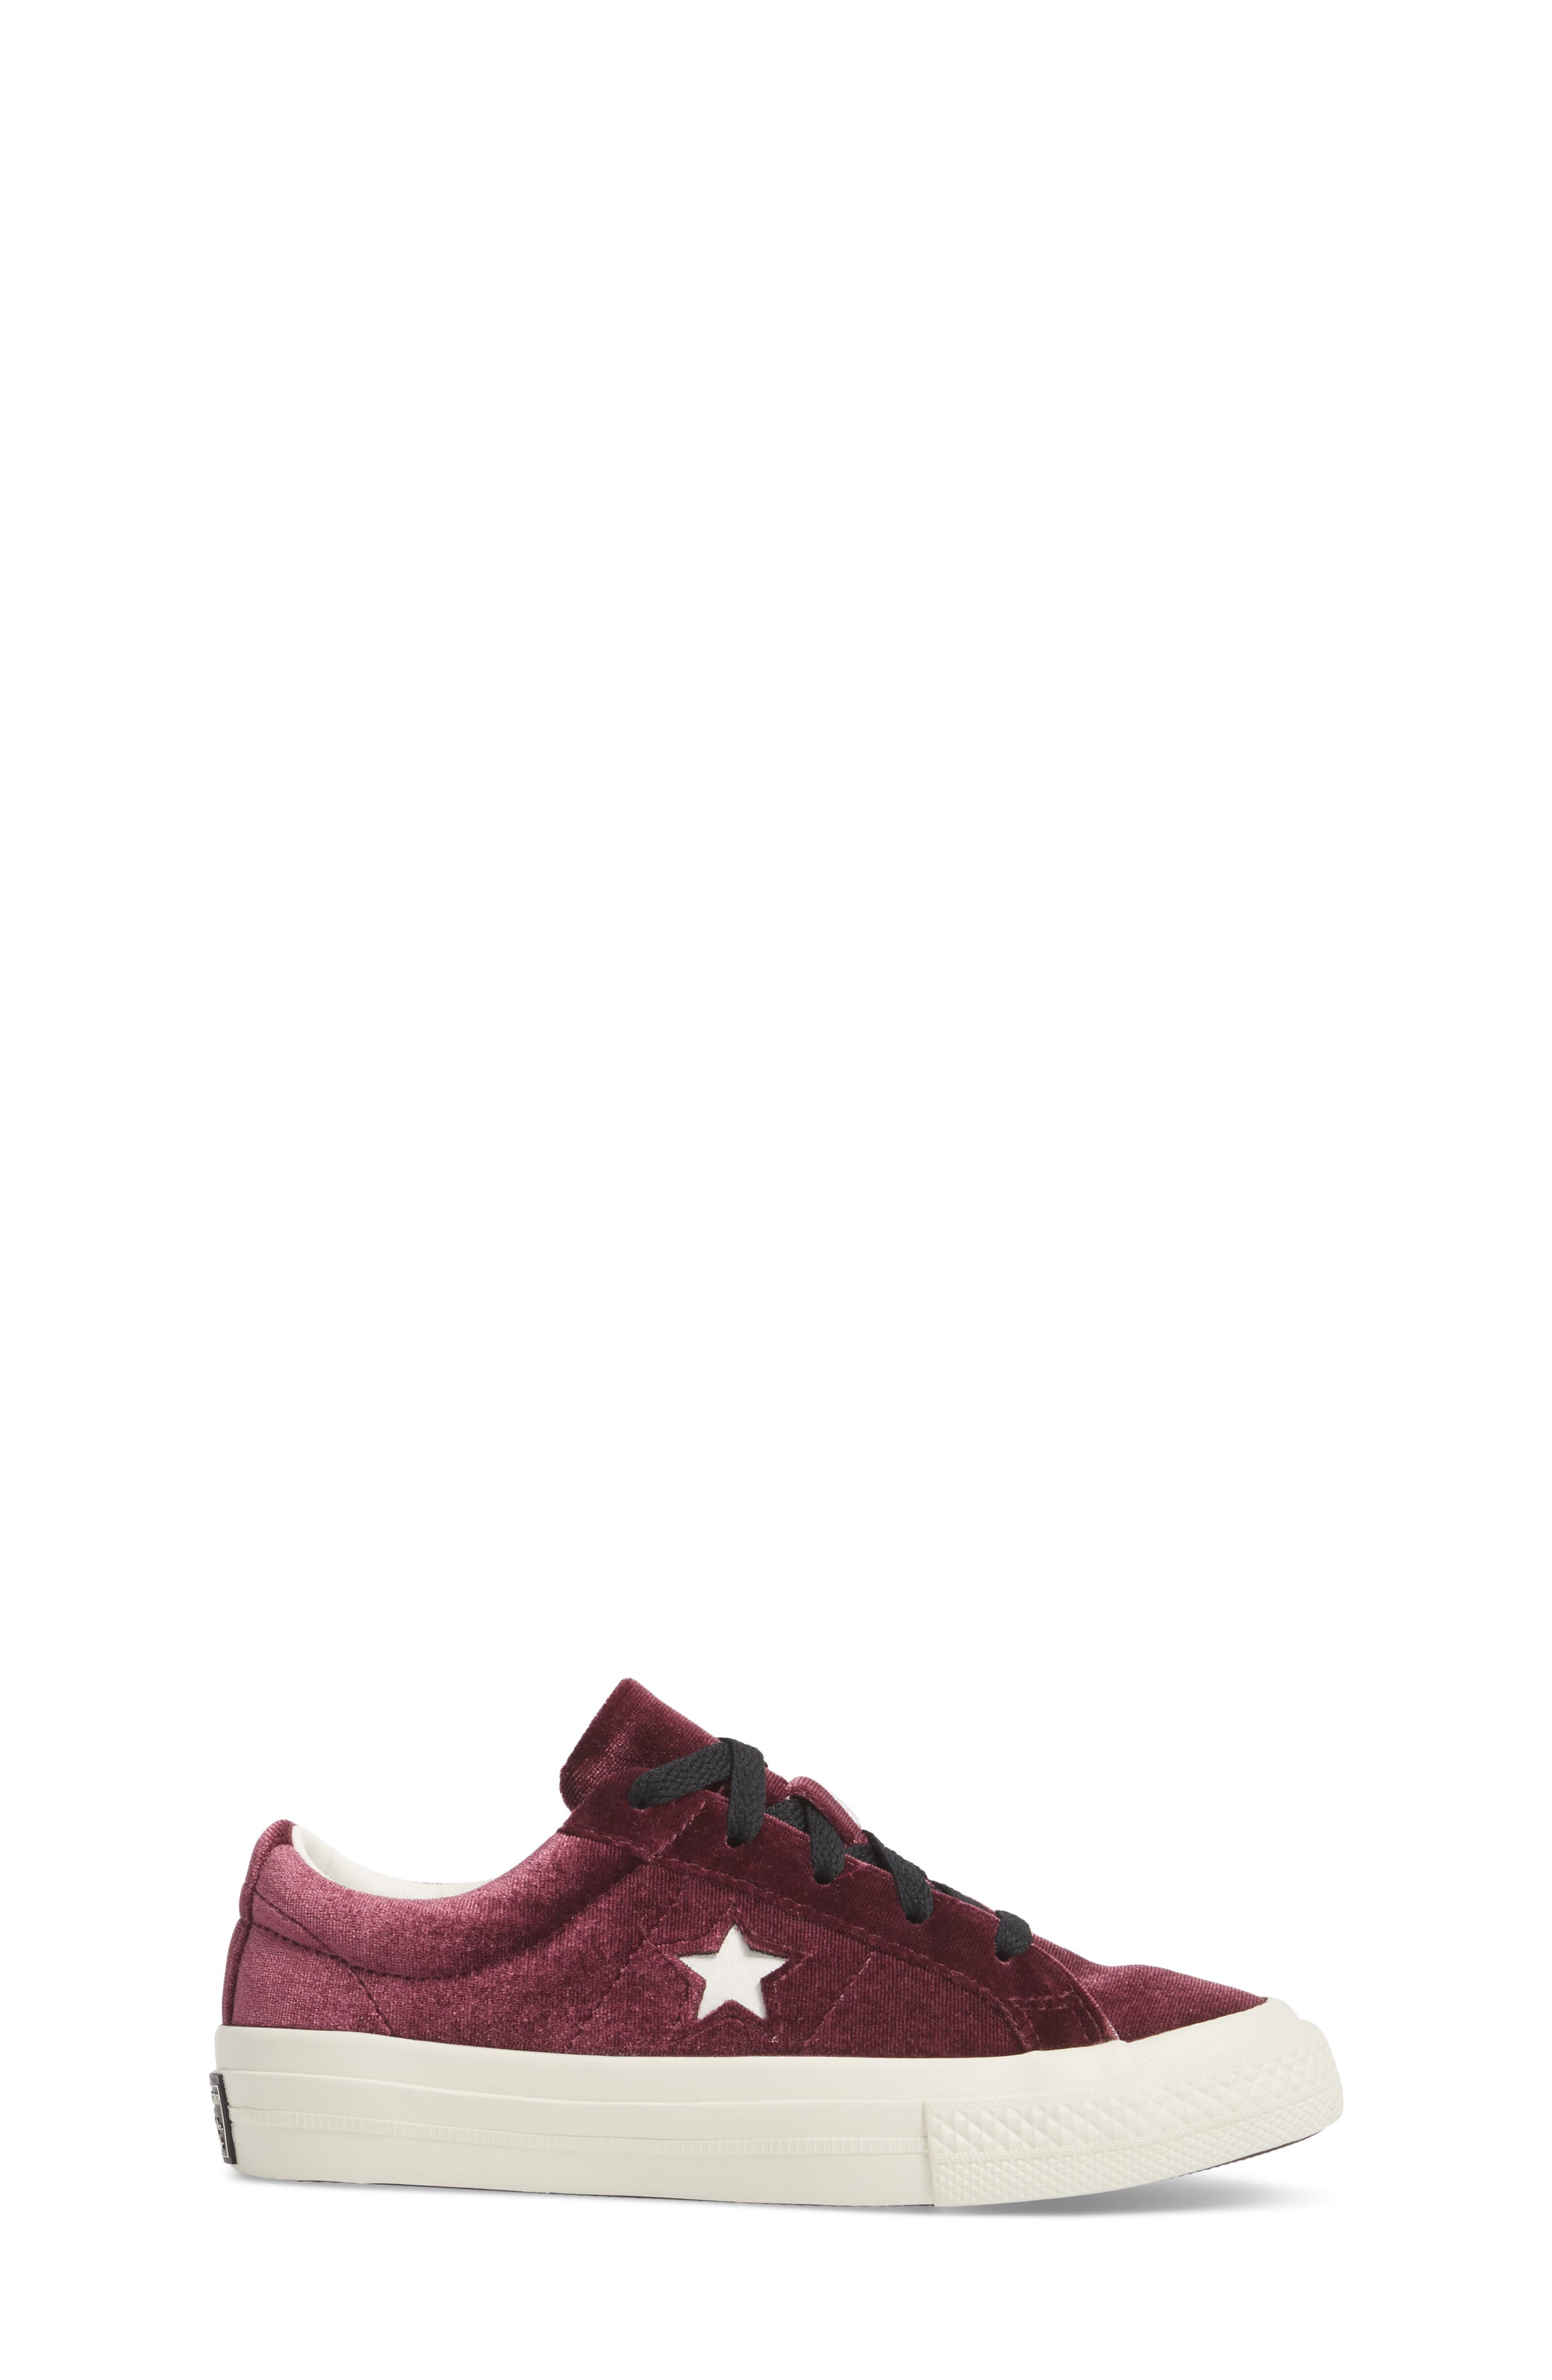 Chuck Taylor<sup>®</sup> All Star<sup>®</sup> One Star Velvet Platform Sneaker,                             Alternate thumbnail 9, color,